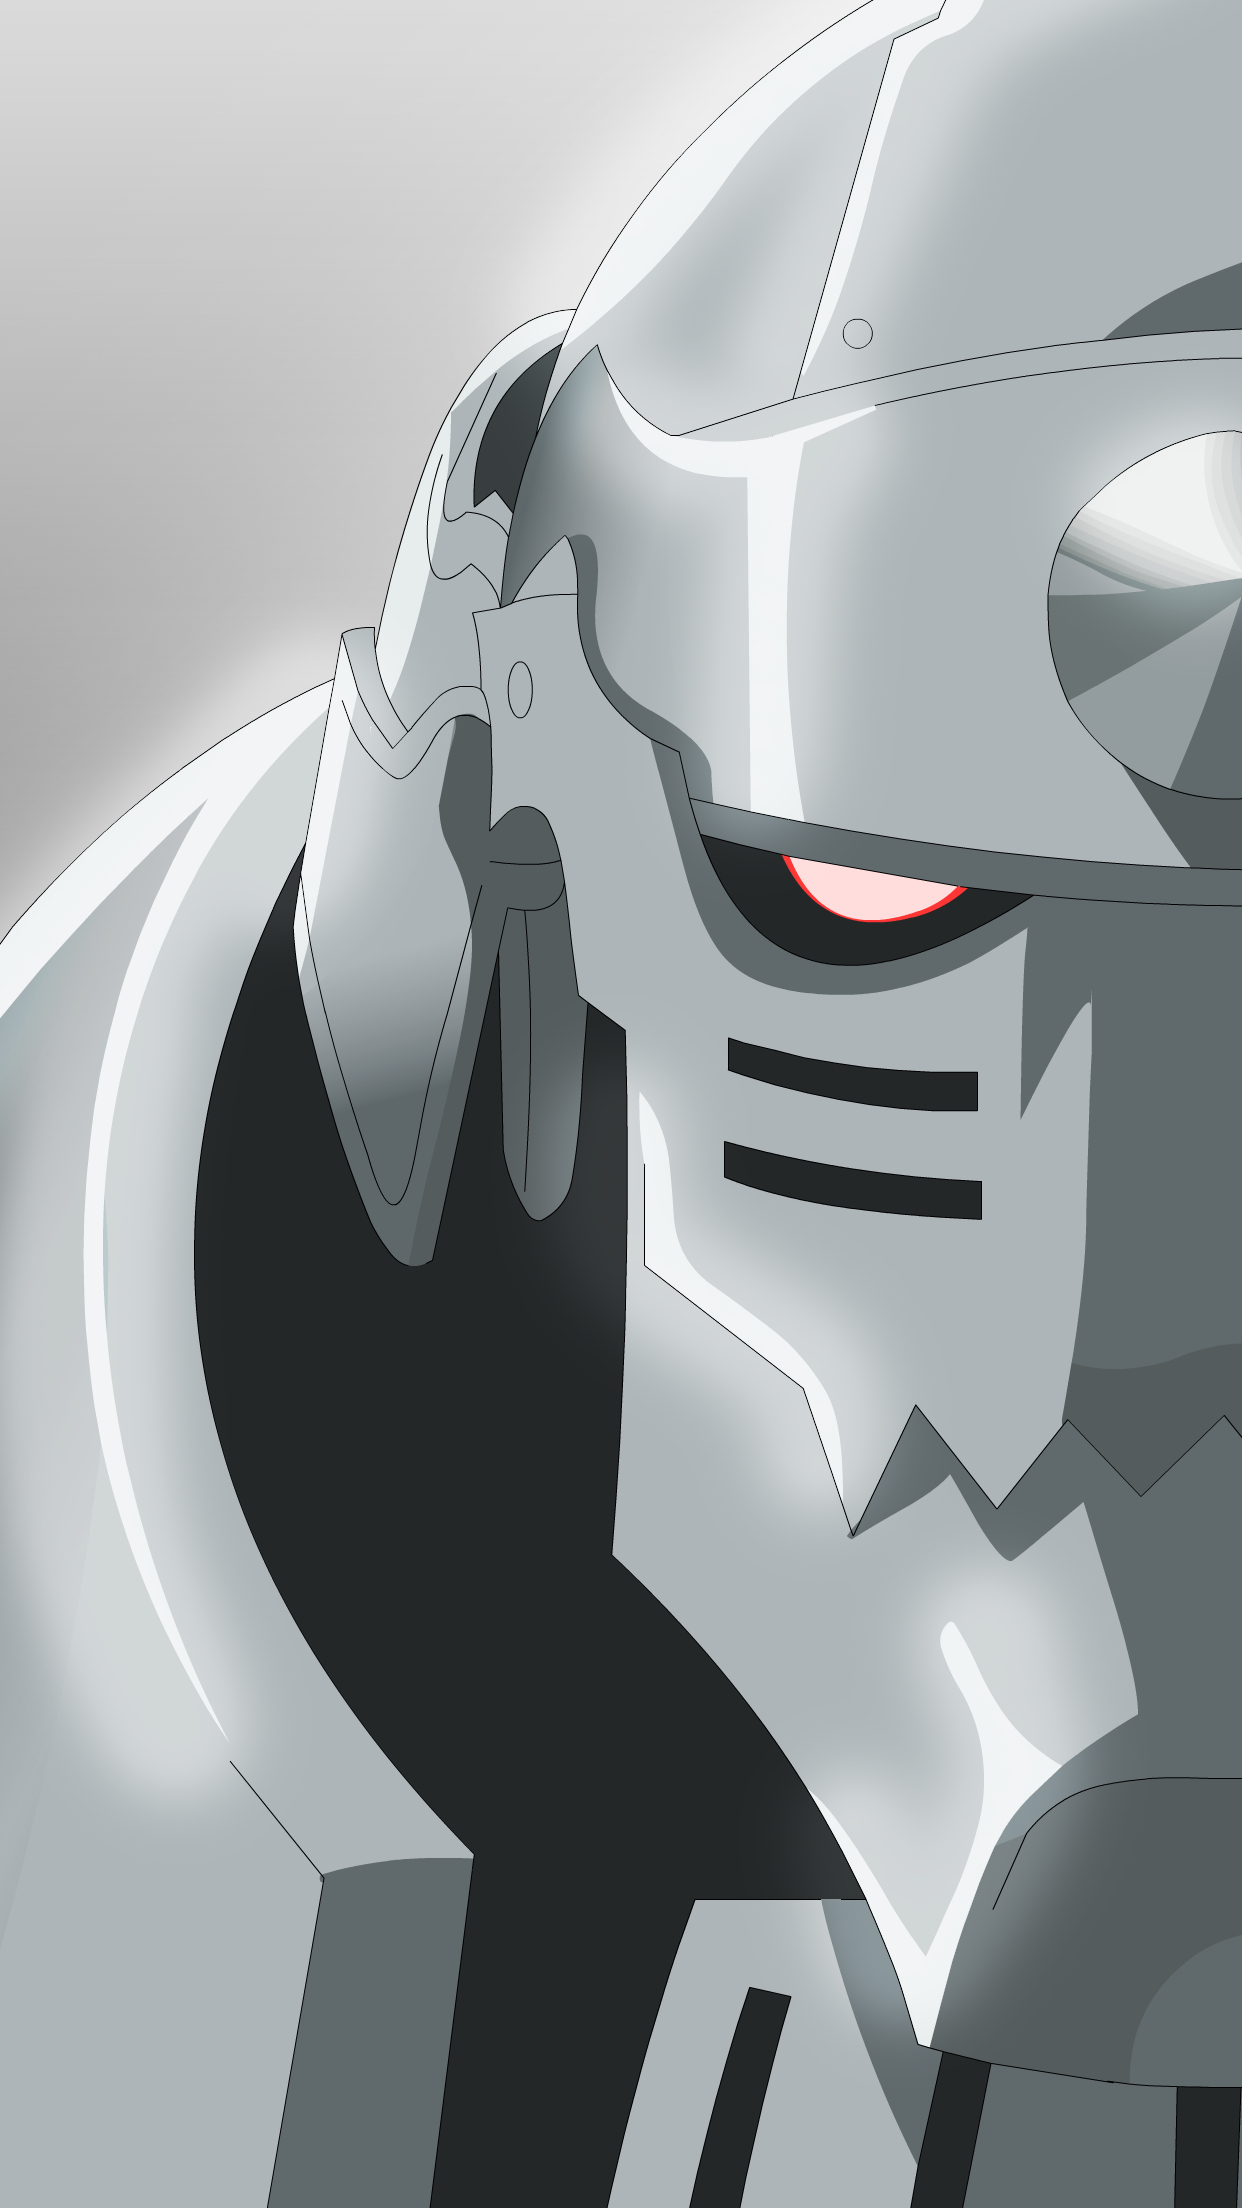 Full Metal Alchemist Alphonse Wallpaper For Iphone X 8 7 6 Free